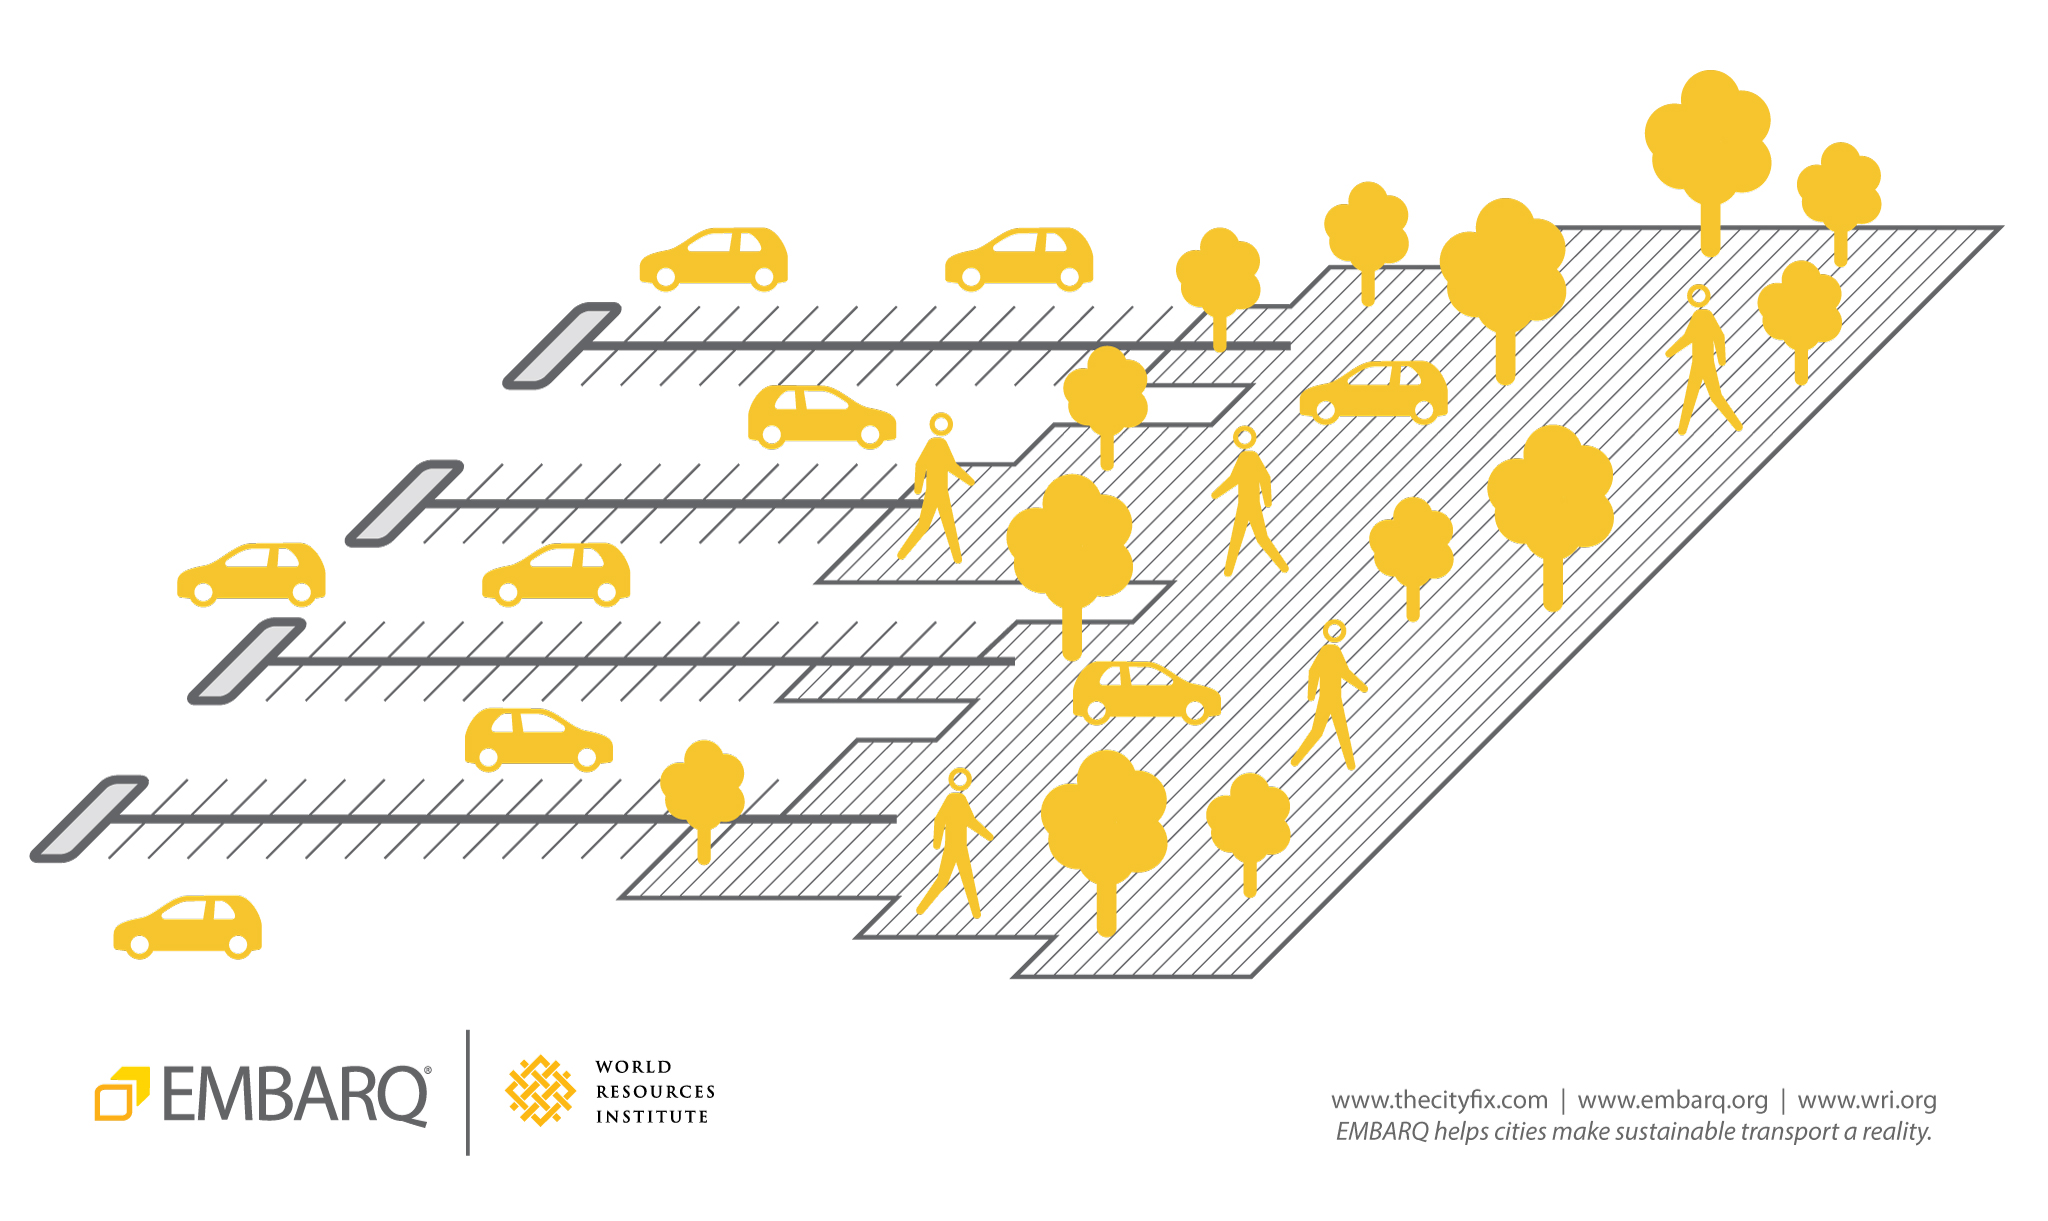 Parking lots can be put to better use through temporary conversion into a productive space, like a public market. The city of San Francisco's Pavement to Parks Program, for example, retrofits parking spaces into public spaces. Graphic by EMBARQ.